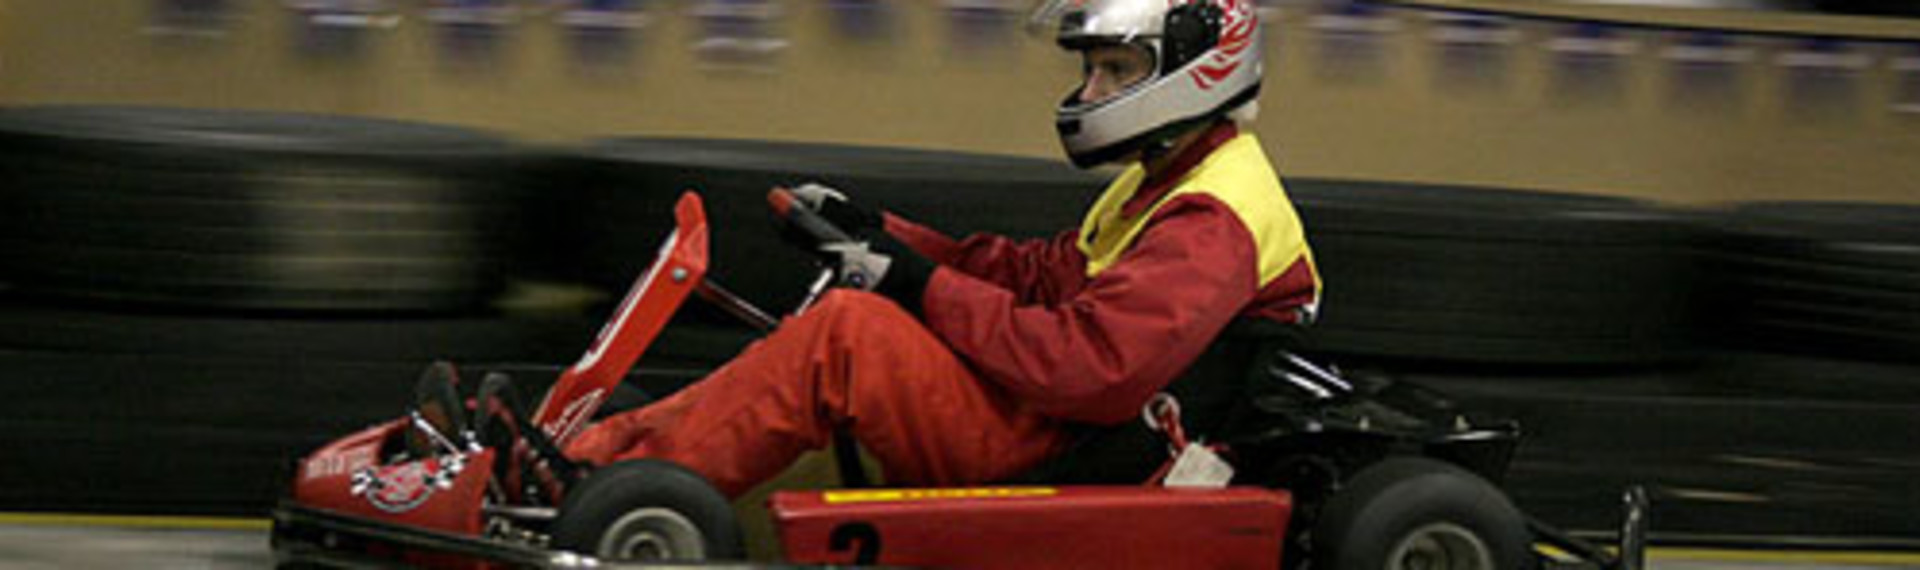 Brno Outdoor Karting image